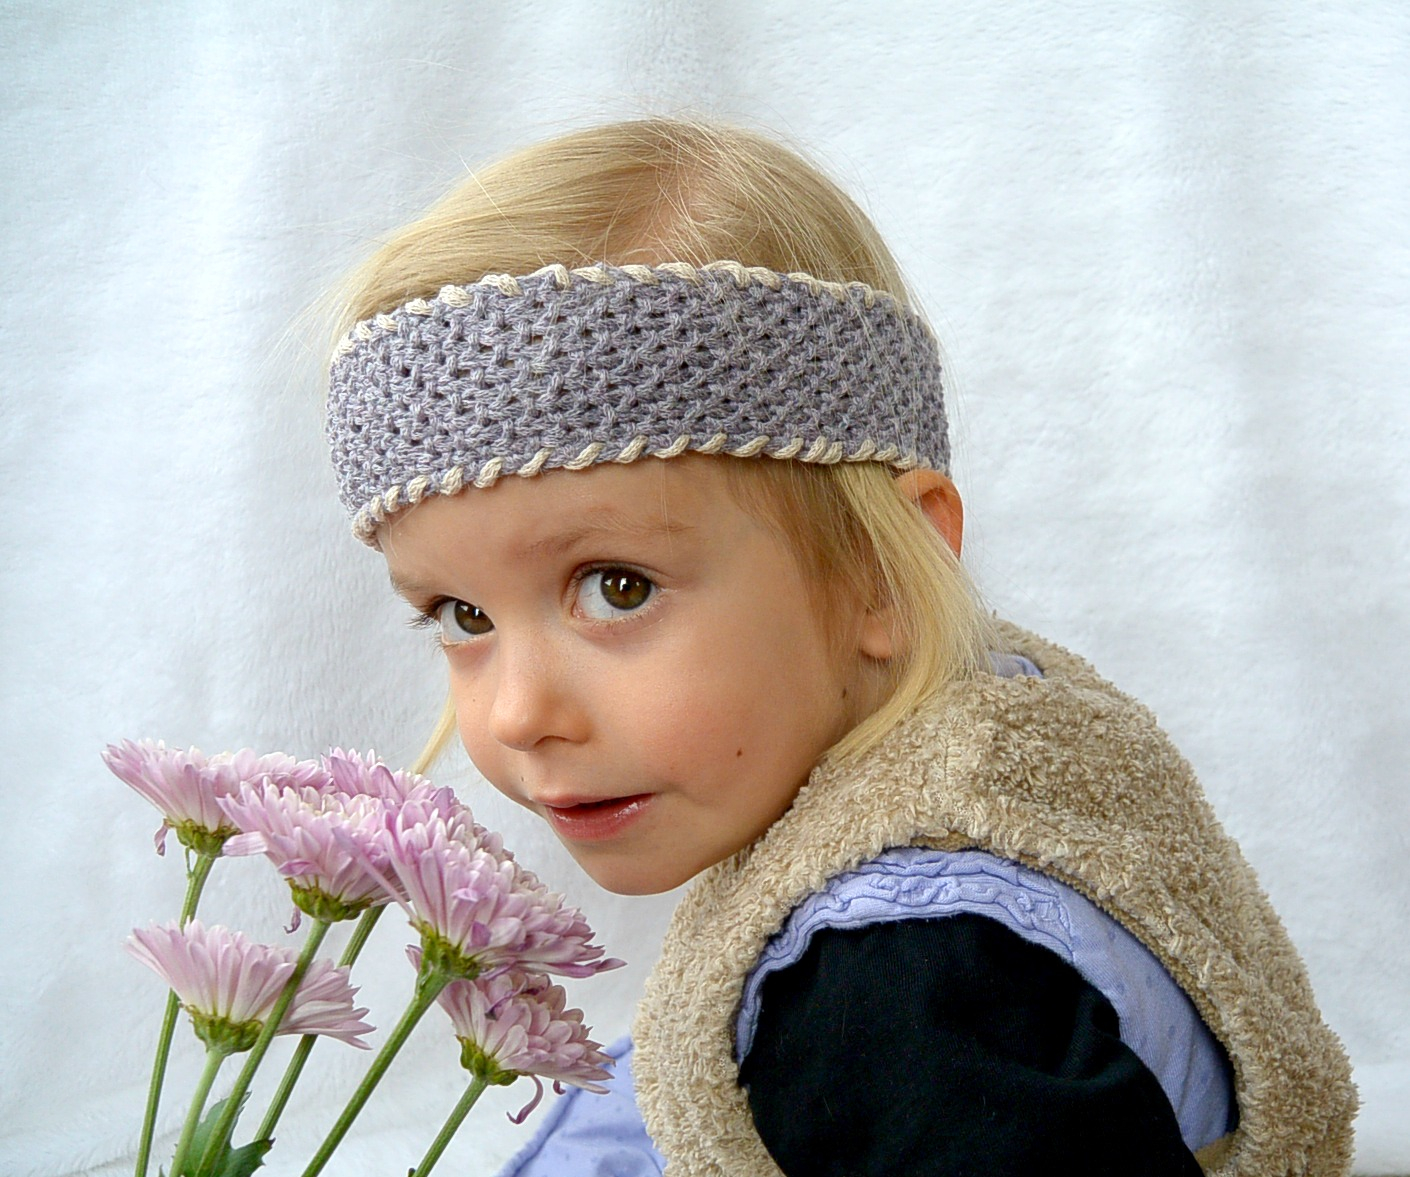 Knit Headband Pattern With Flower Easy Seed Stitch Headband Adult Or Child Mama In A Stitch